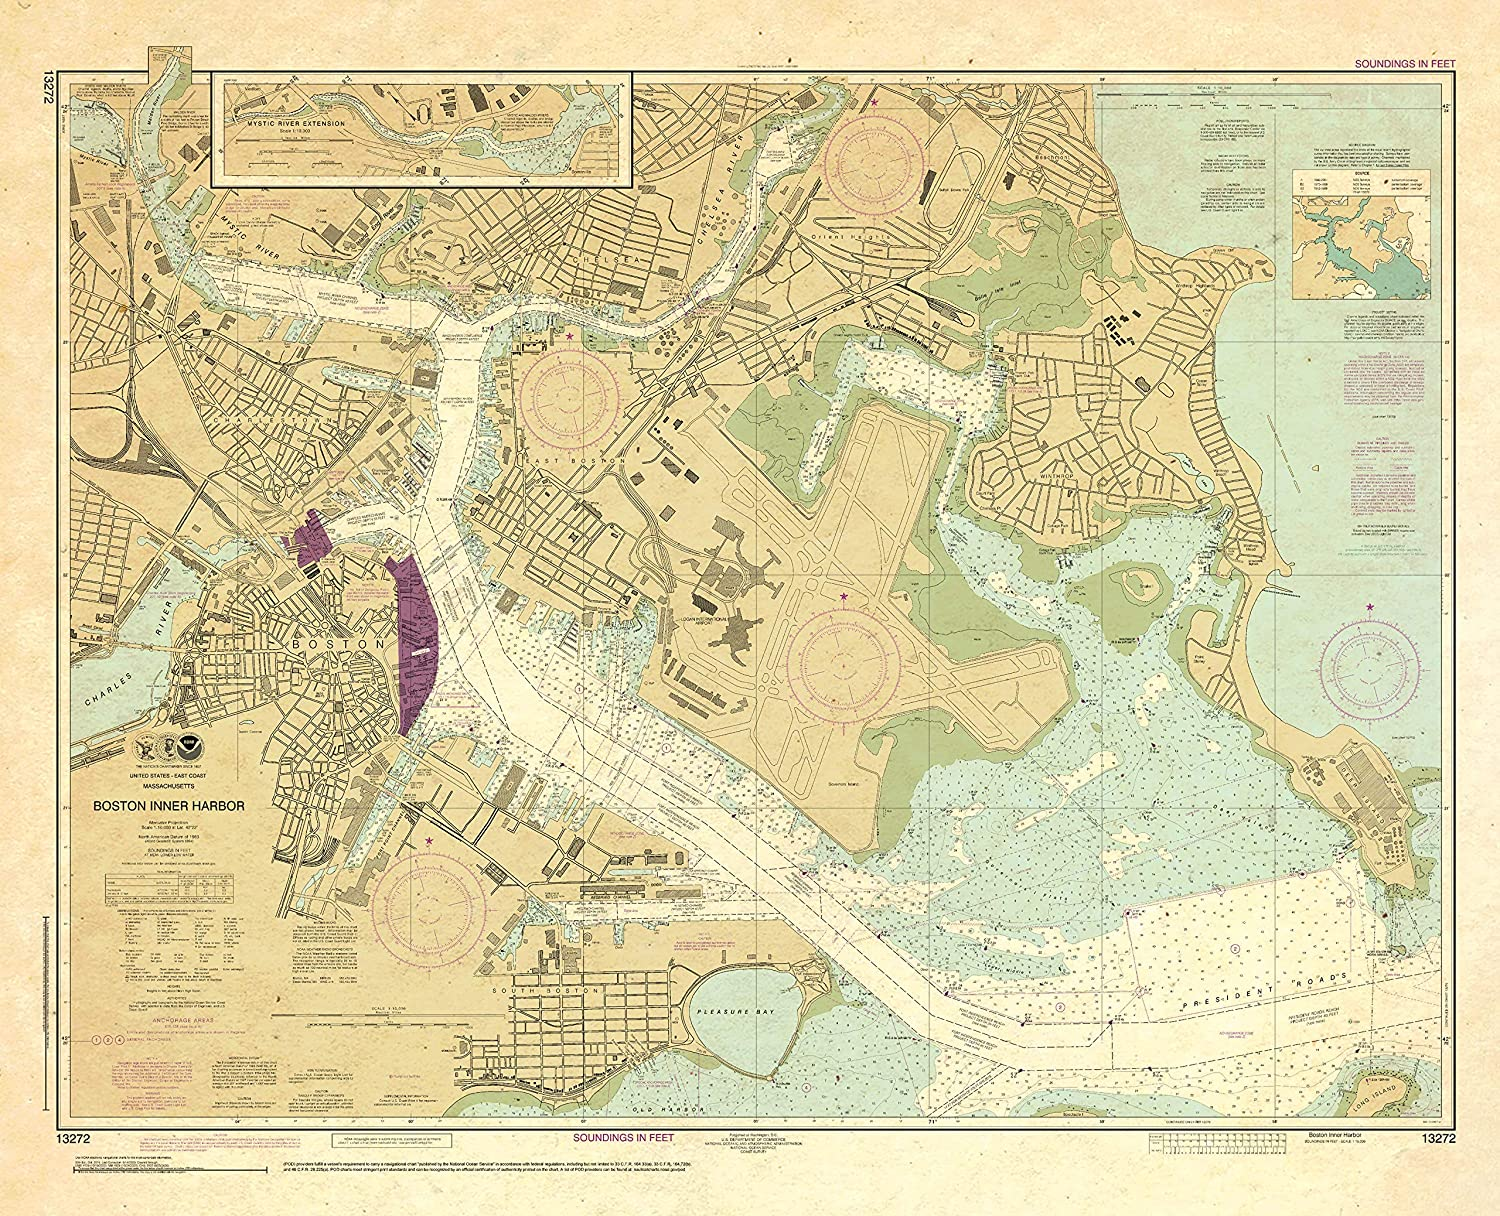 Paradise Cay Publications NOAA Chart Excellent Harbor Inner 13272: Large-scale sale Boston